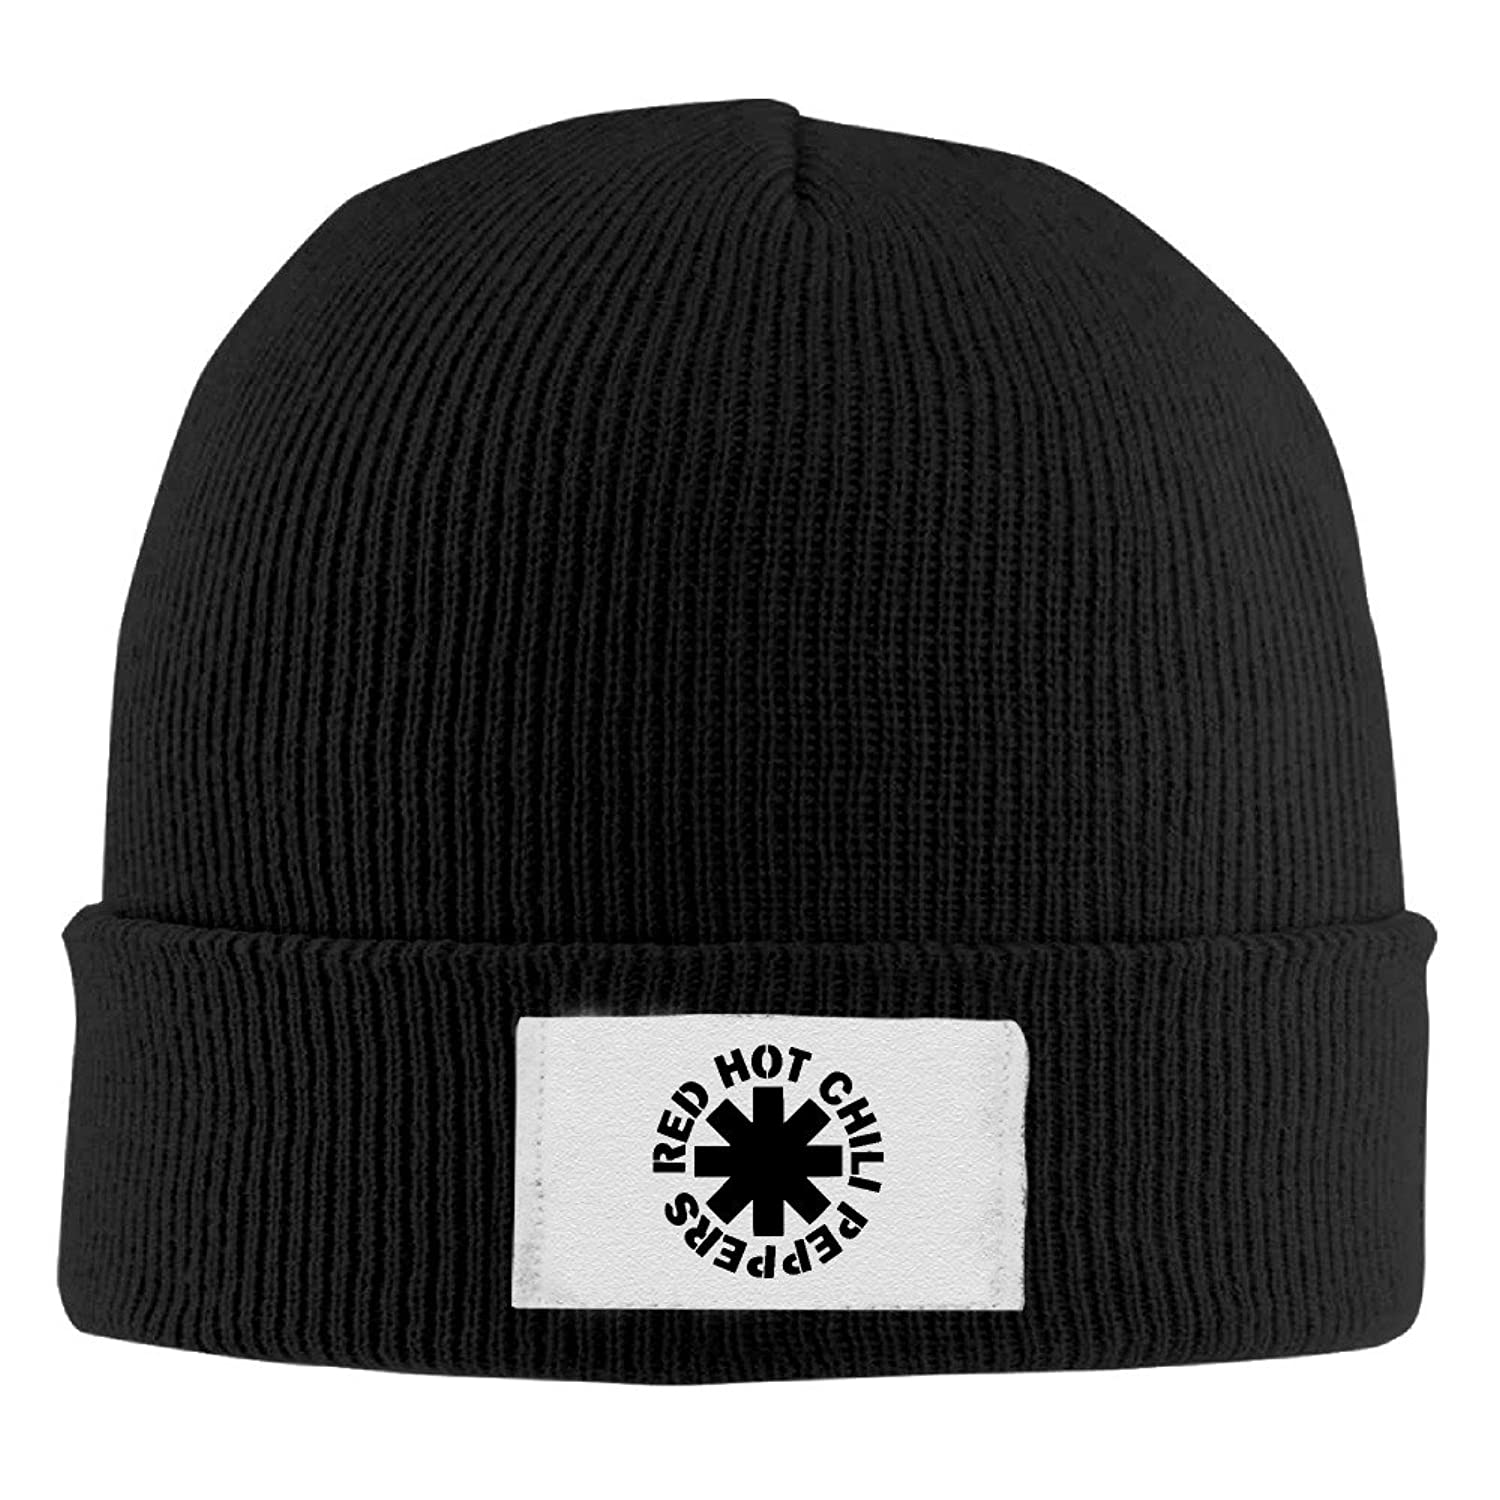 YFLLAY RHCP Red Hot Chili Peppers Knit Cap Woolen Hat For Unisex